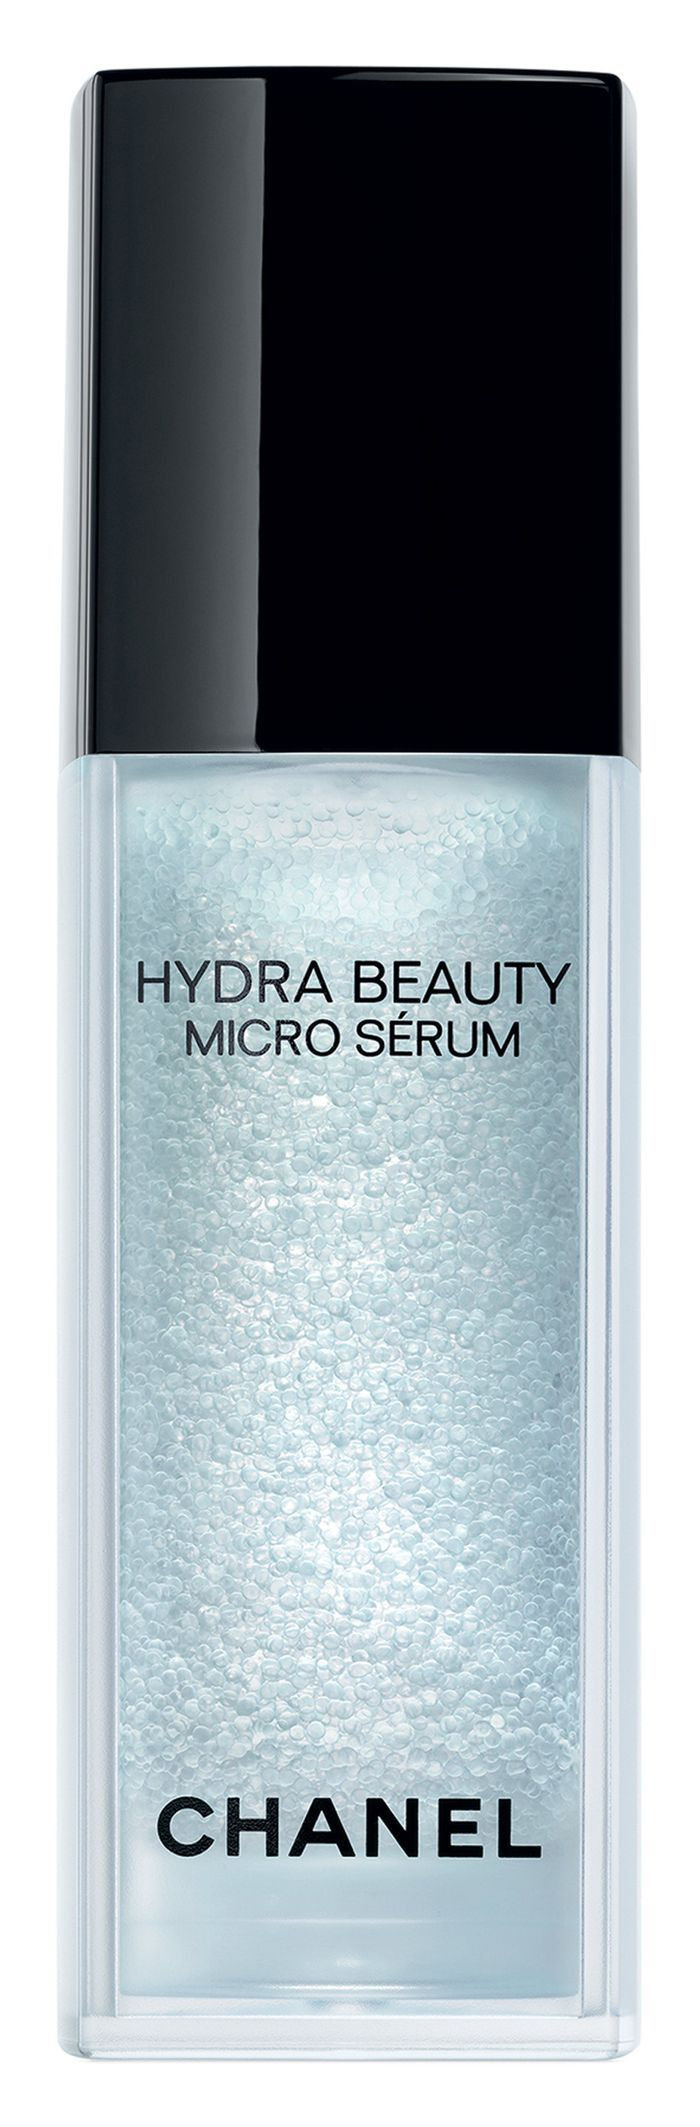 le meilleur soin du visage hydratant 2016 micro s rum hydra beauty chanel les meilleurs. Black Bedroom Furniture Sets. Home Design Ideas